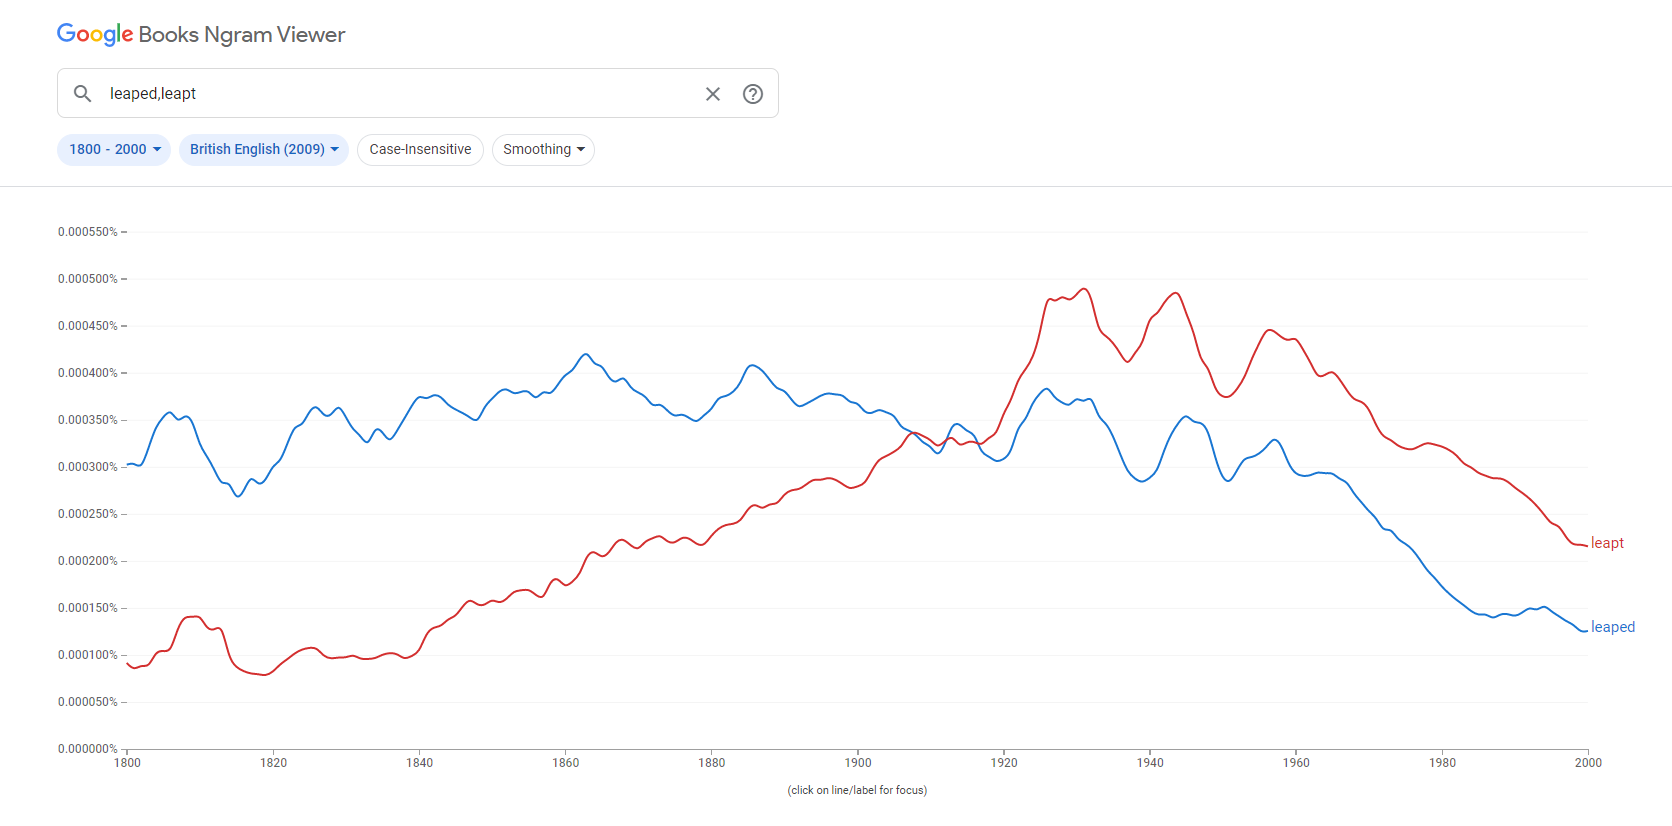 Chart showing usage of words Leapt and Leaped in British Publications